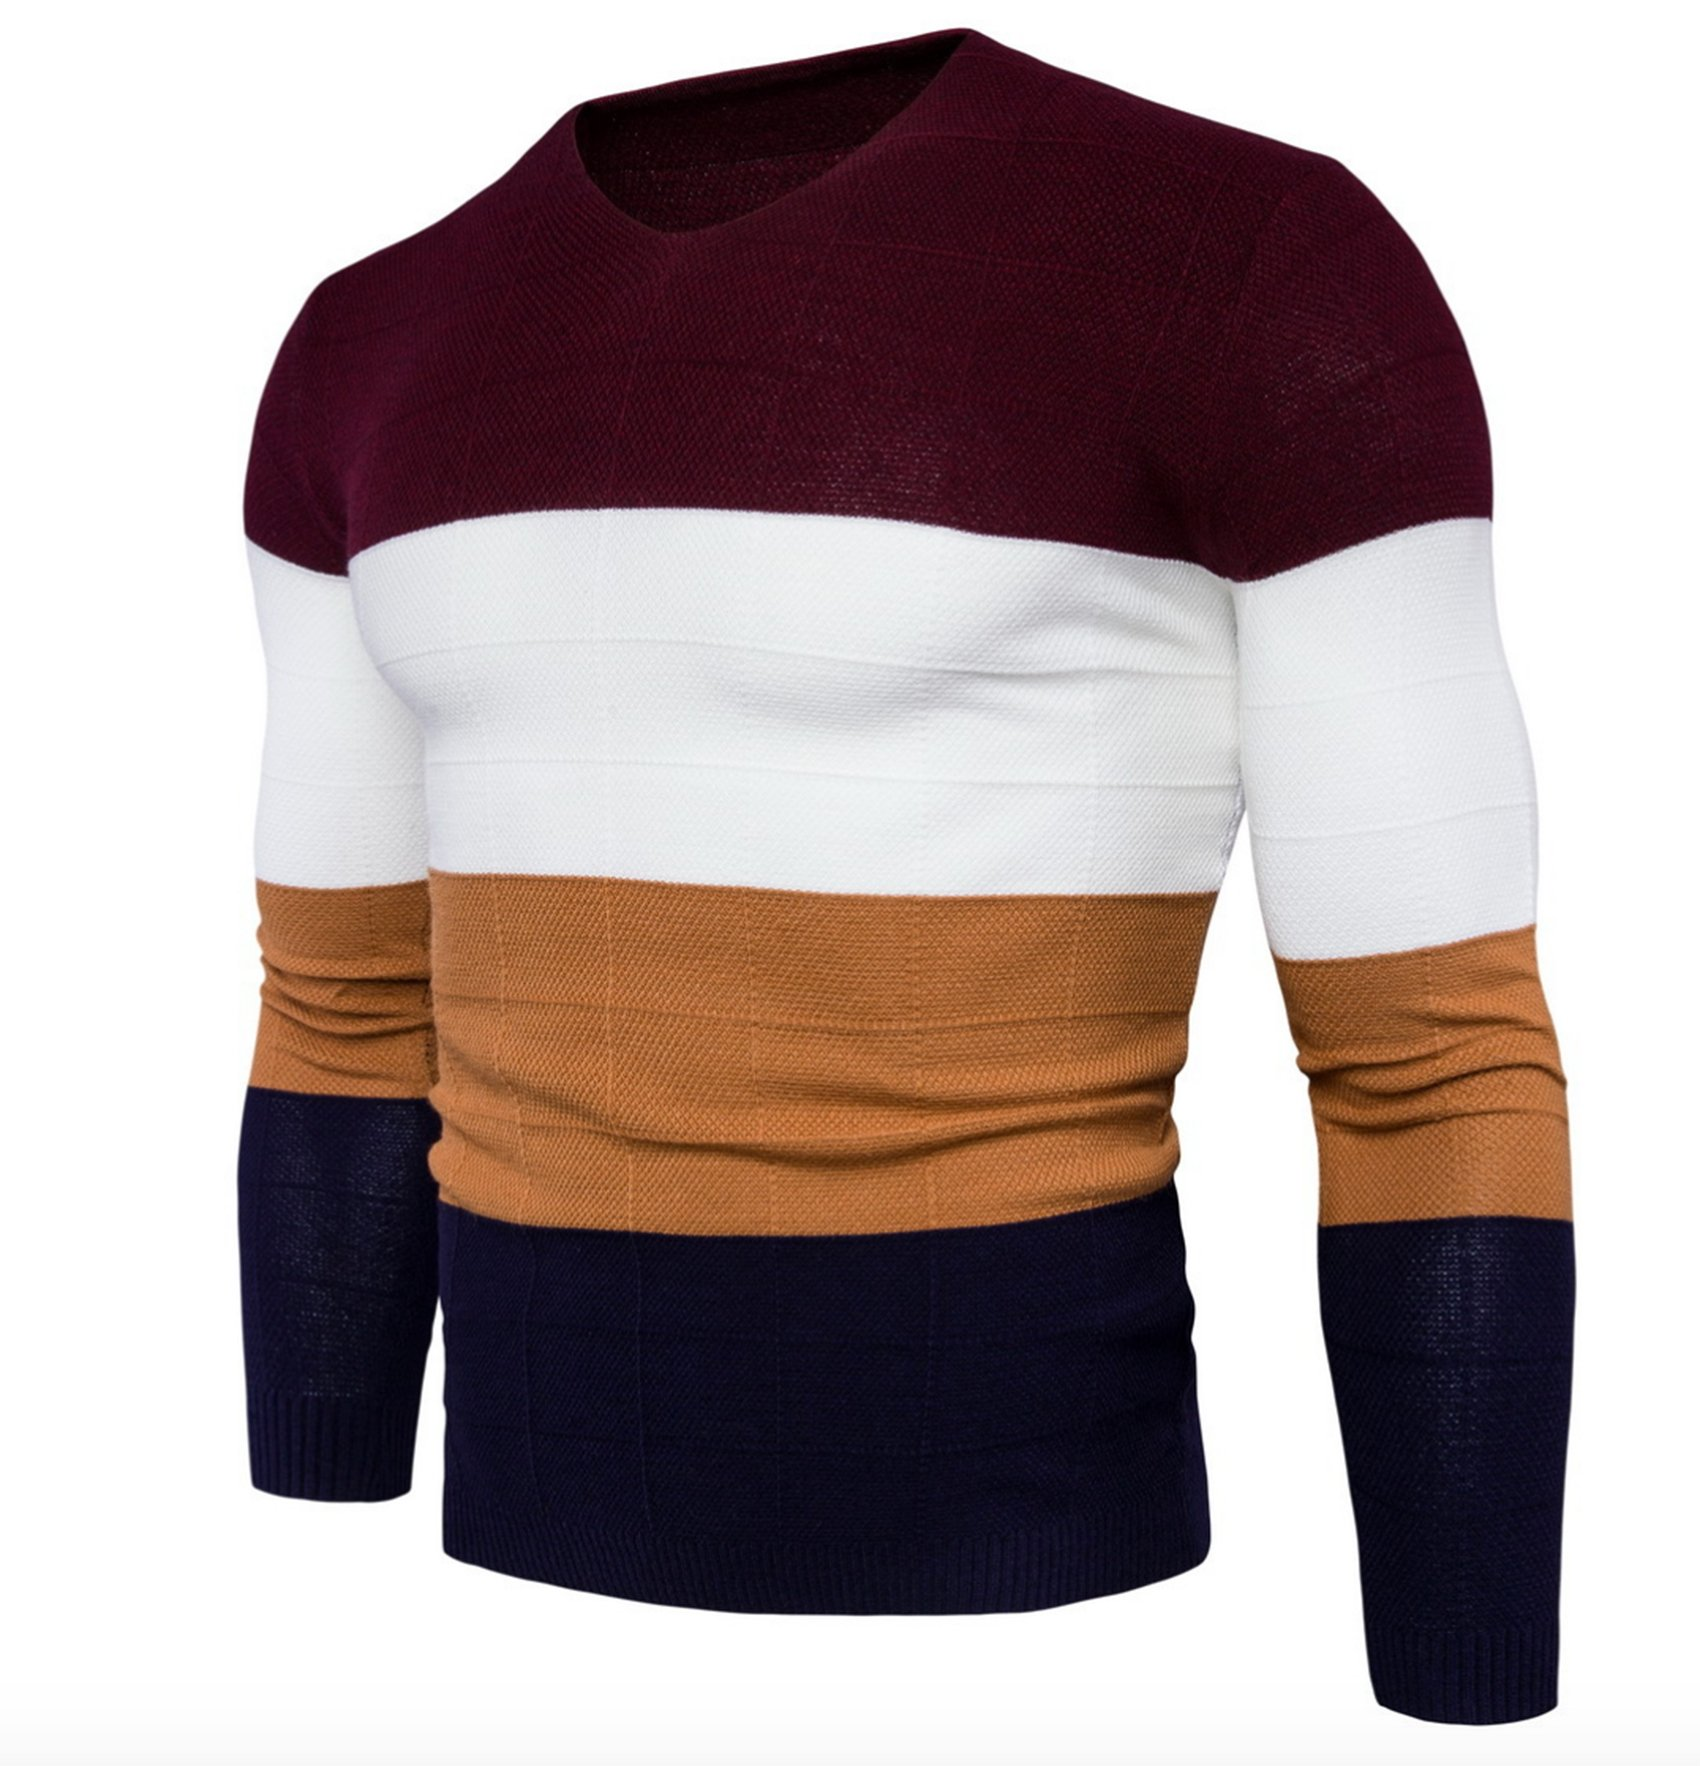 WSLCN Mens Chic Fine Knit V-Neck Coton Jumper Pullover Contrast Color Sweater Red US S (Asian L) by WSLCN (Image #2)